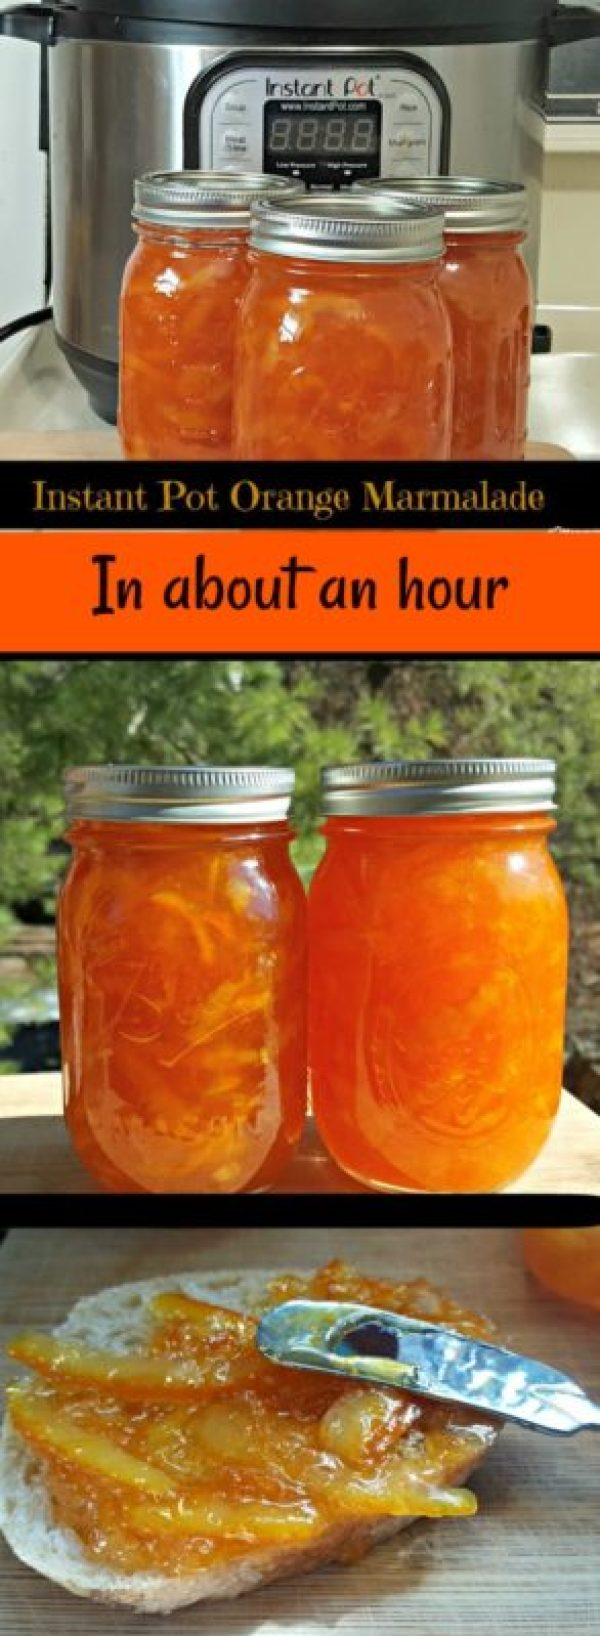 Instant Pot Orange Marmalade in about an hour